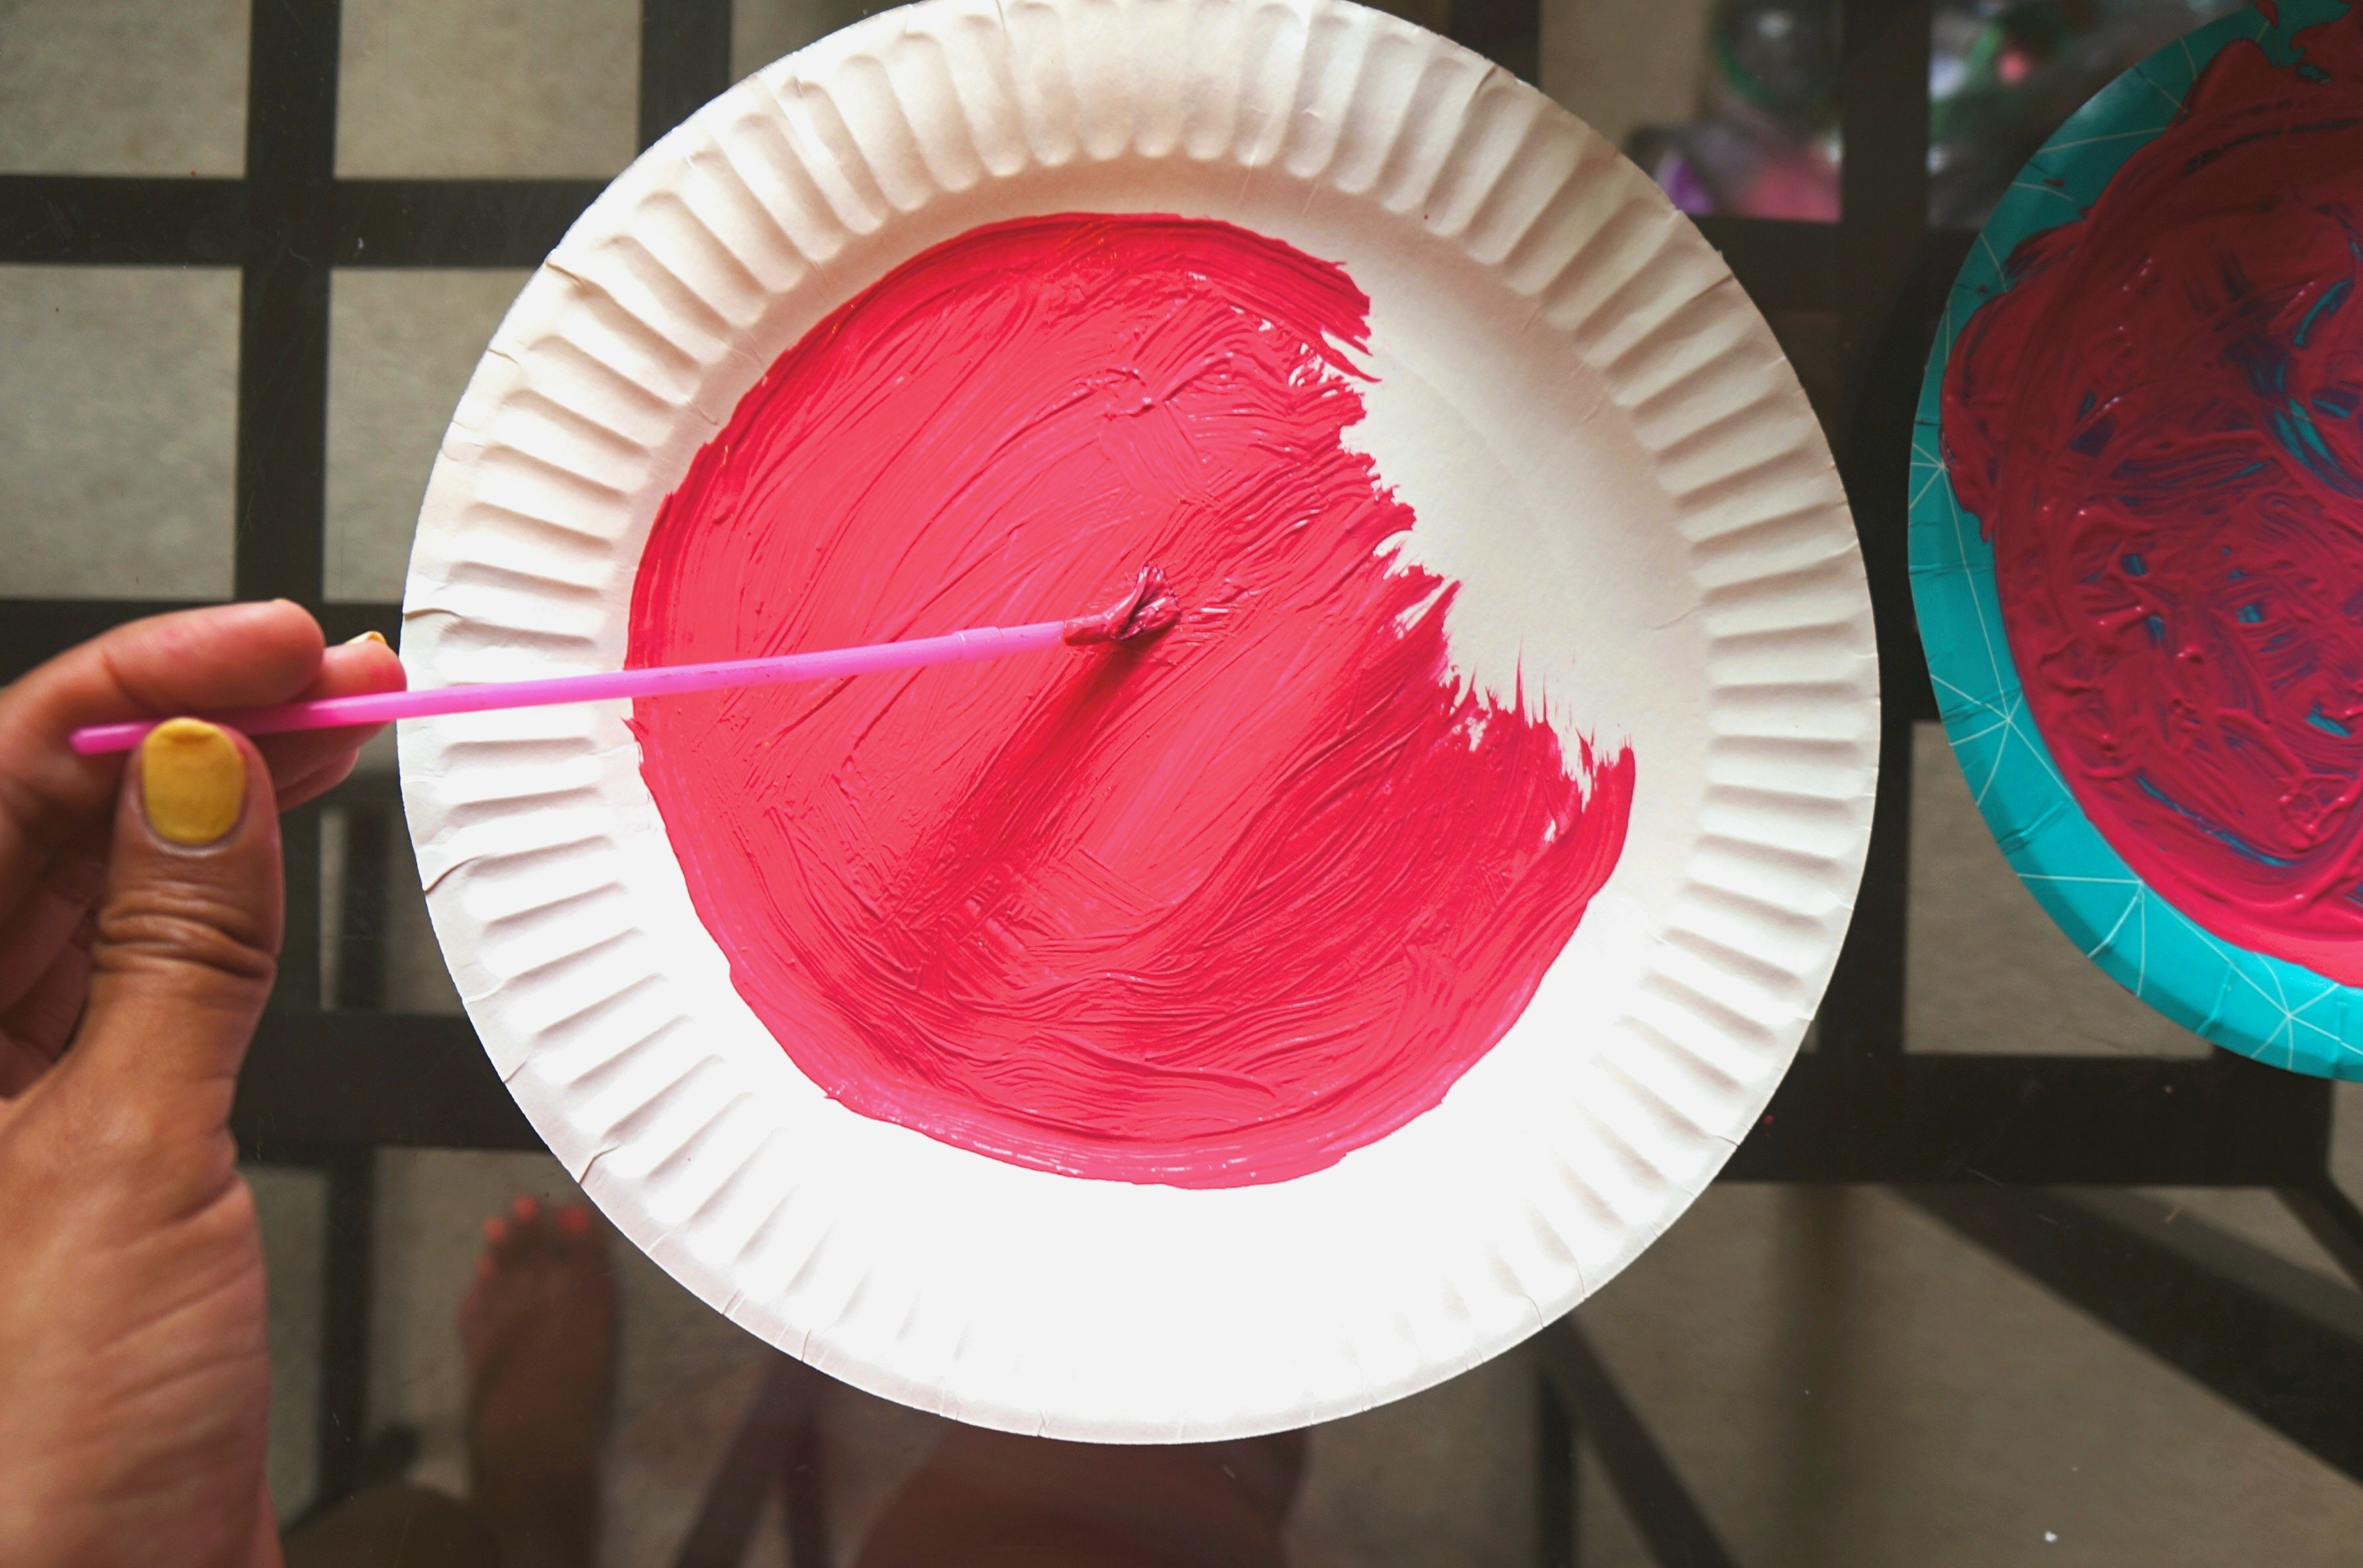 Painting paper plate watermelon pink